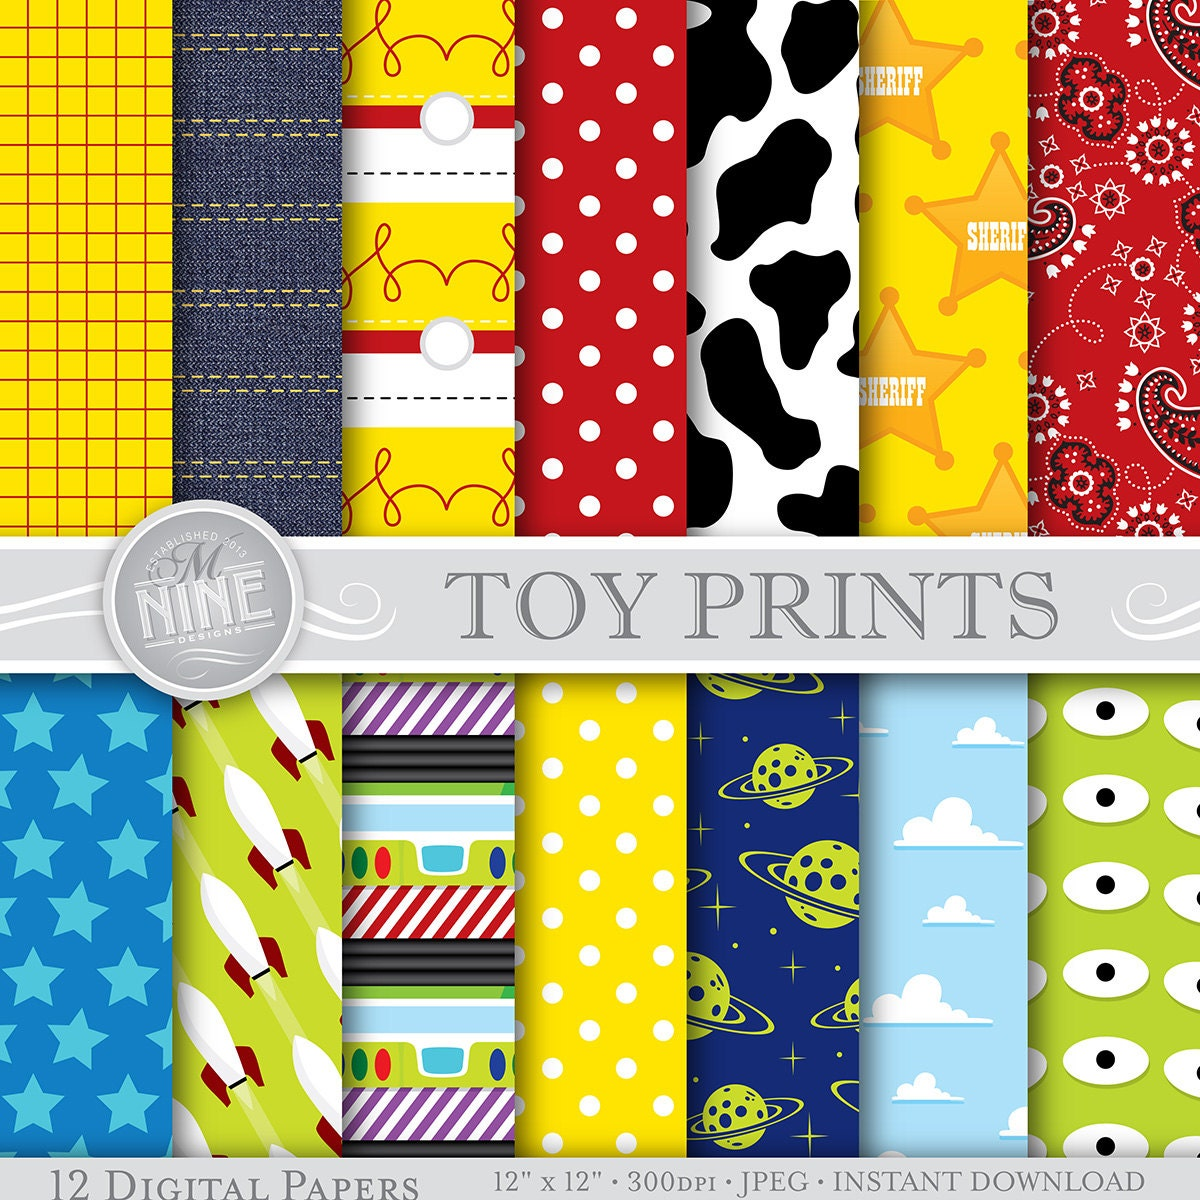 Scrapbook paper designs to print - Toy Story Digital Paper Toy Story Inspired Pattern Prints Instant Download Paper Pack Patterns Scrapbook Print